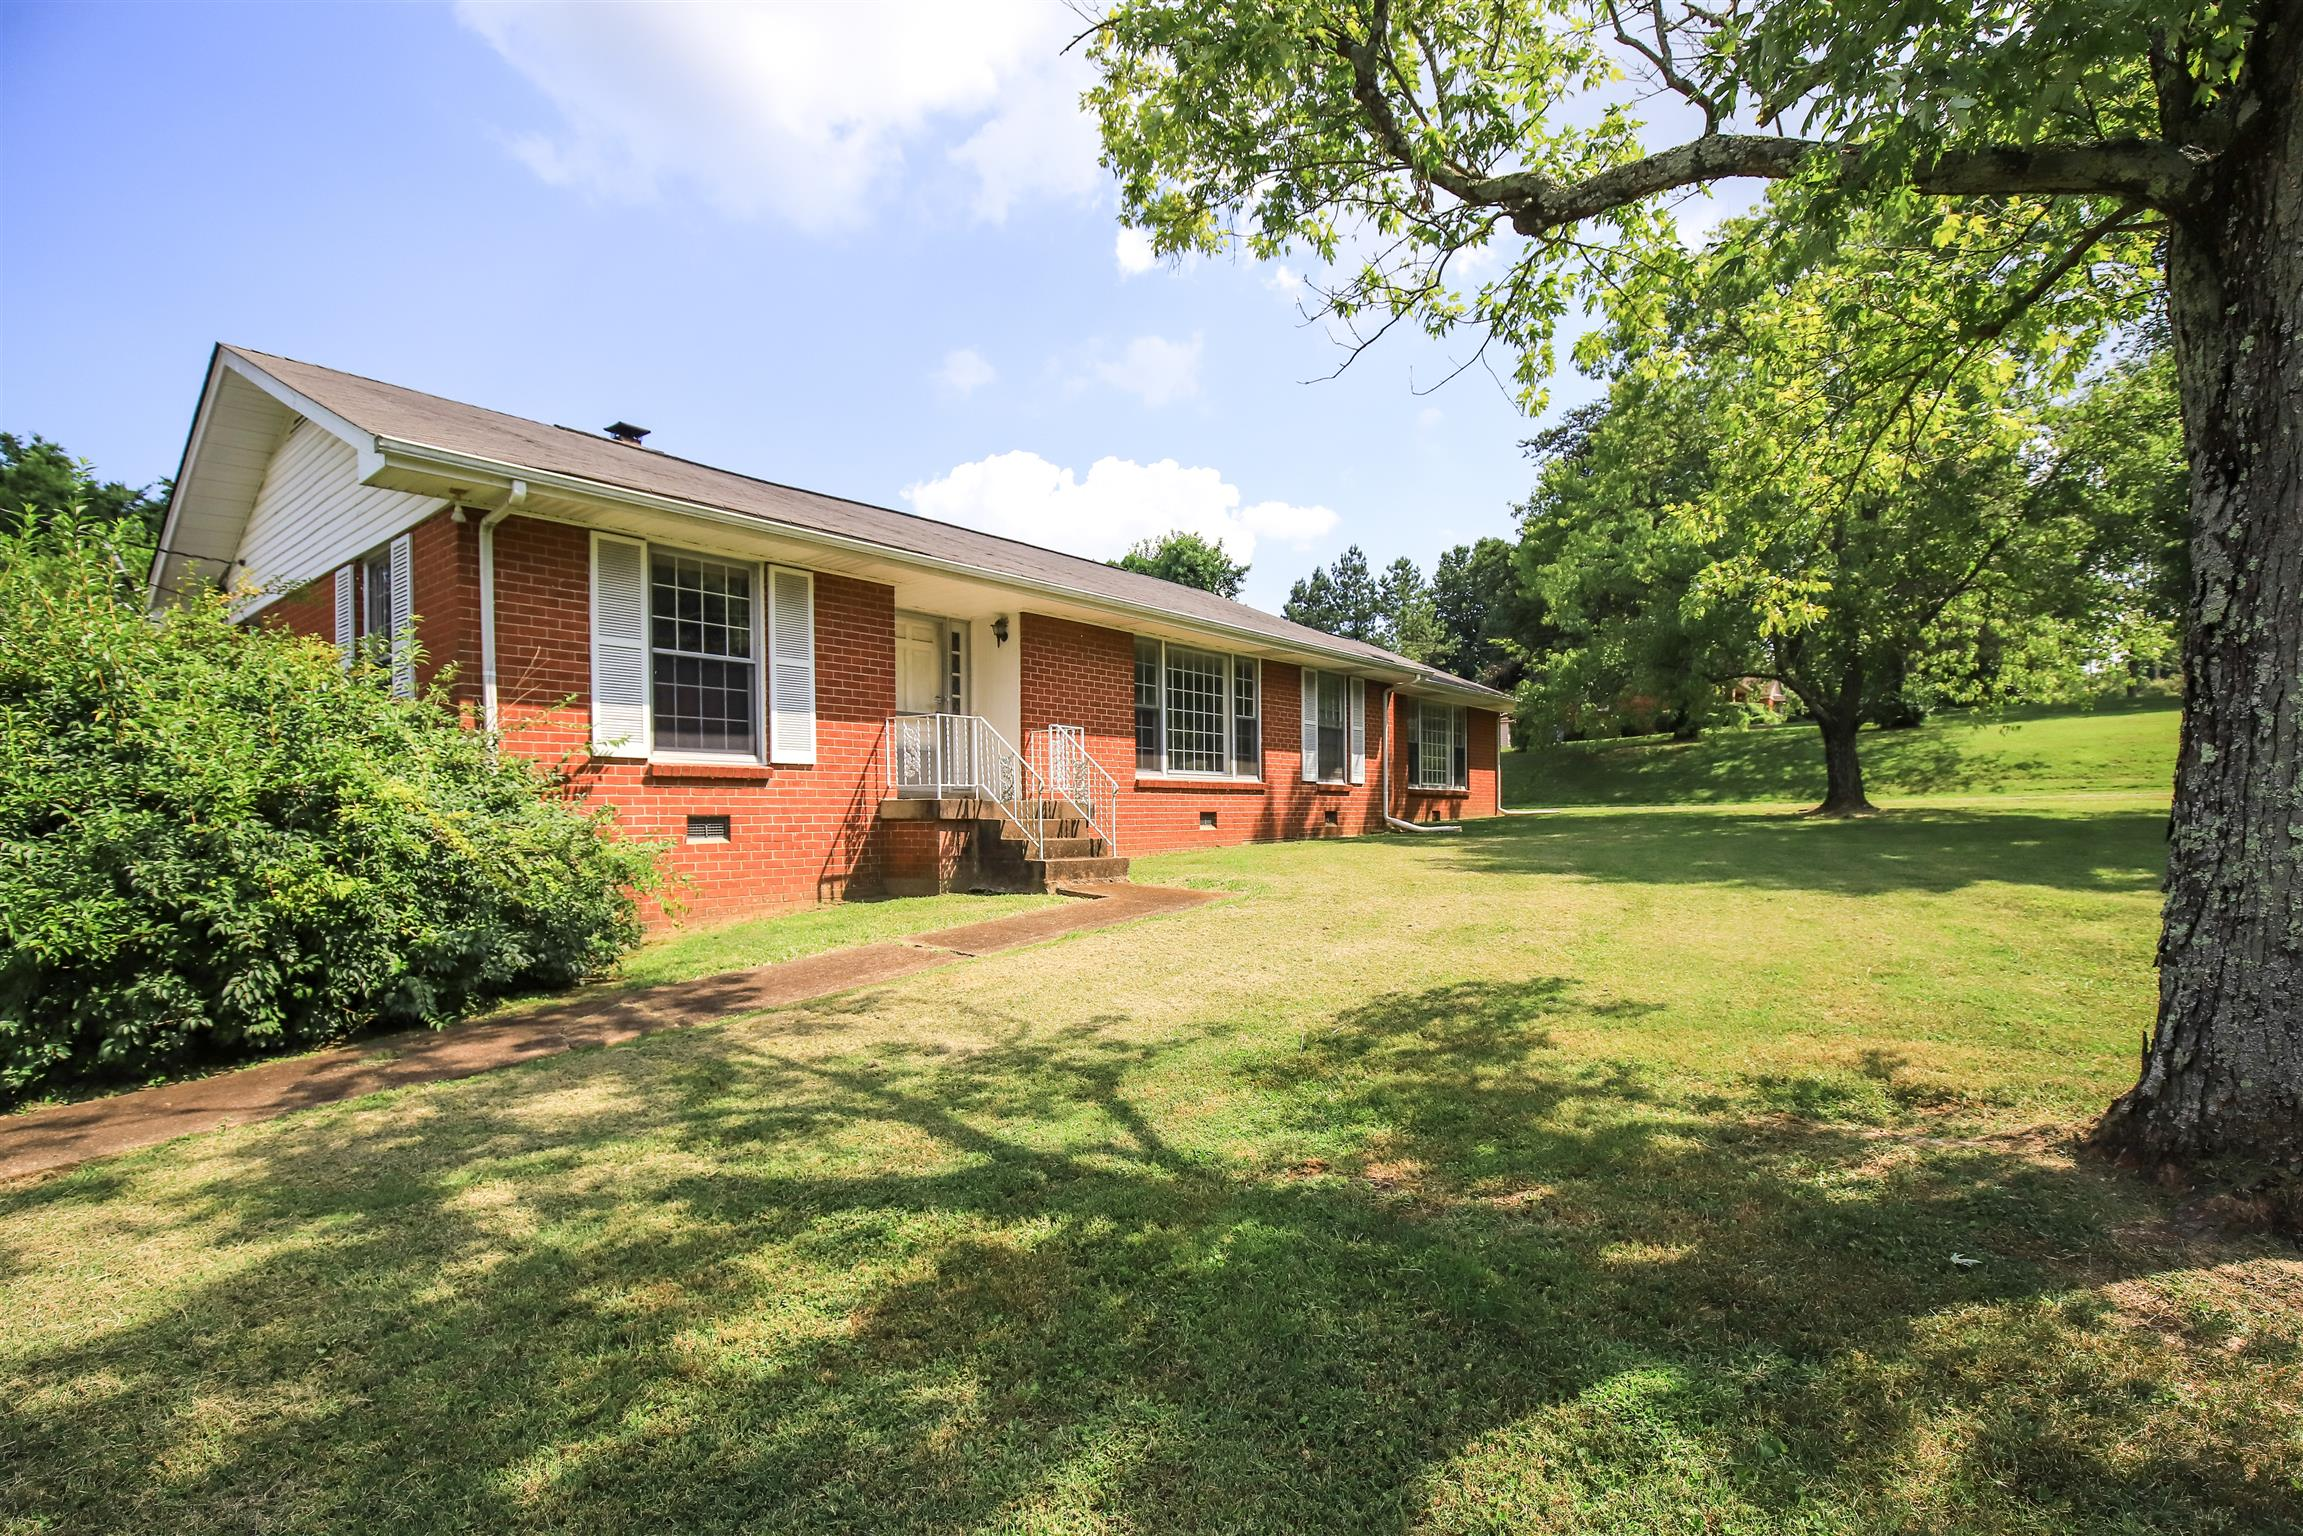 702 Cerro Vista Dr, Goodlettsville, TN 37072 - Goodlettsville, TN real estate listing